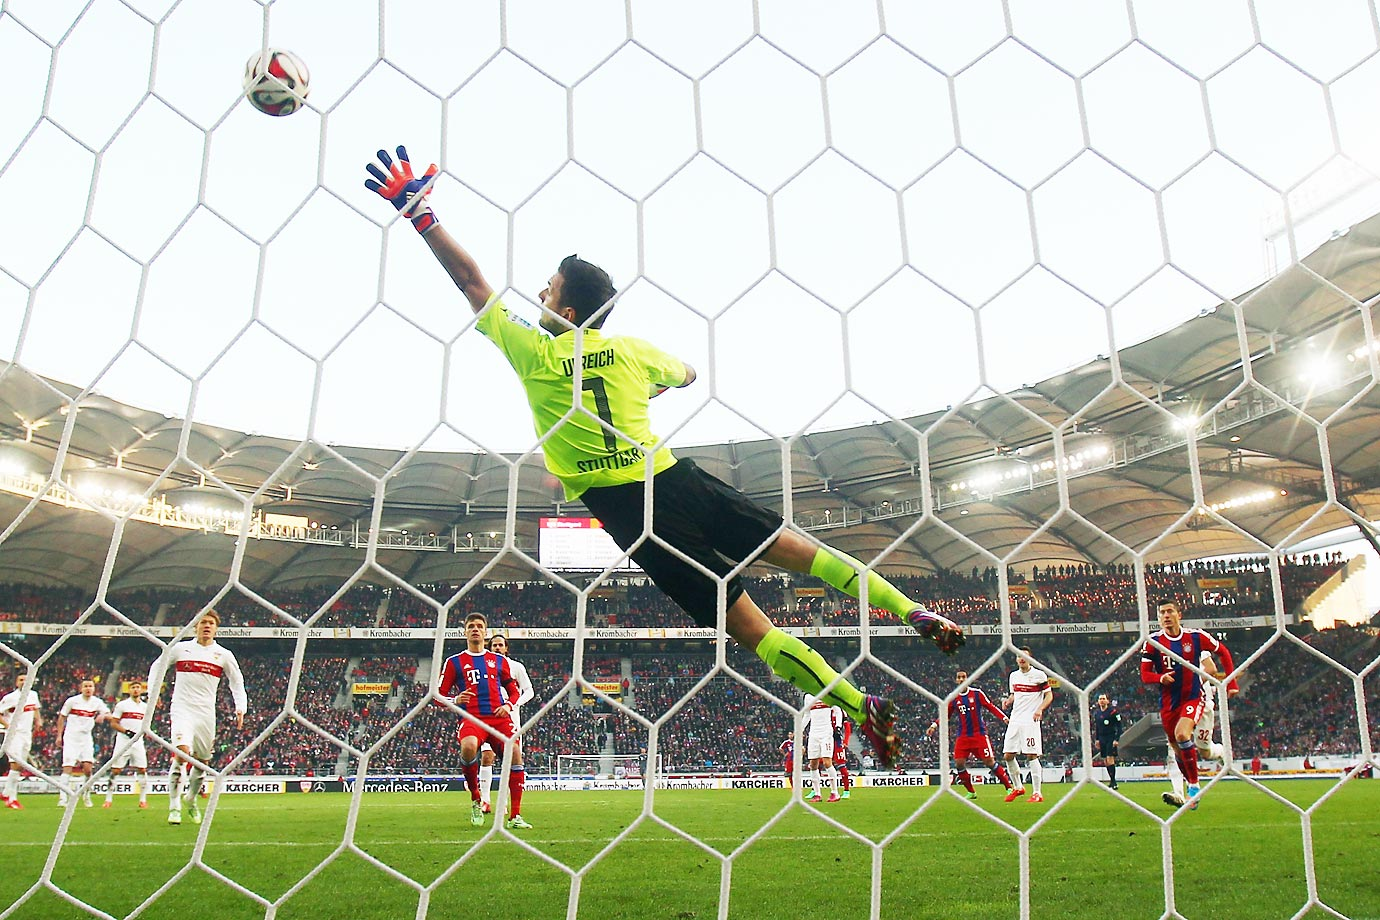 David Alaba of Muenchen scores his team's second goal against Sven Ulreich of Stuttgart during the Bundesliga match.